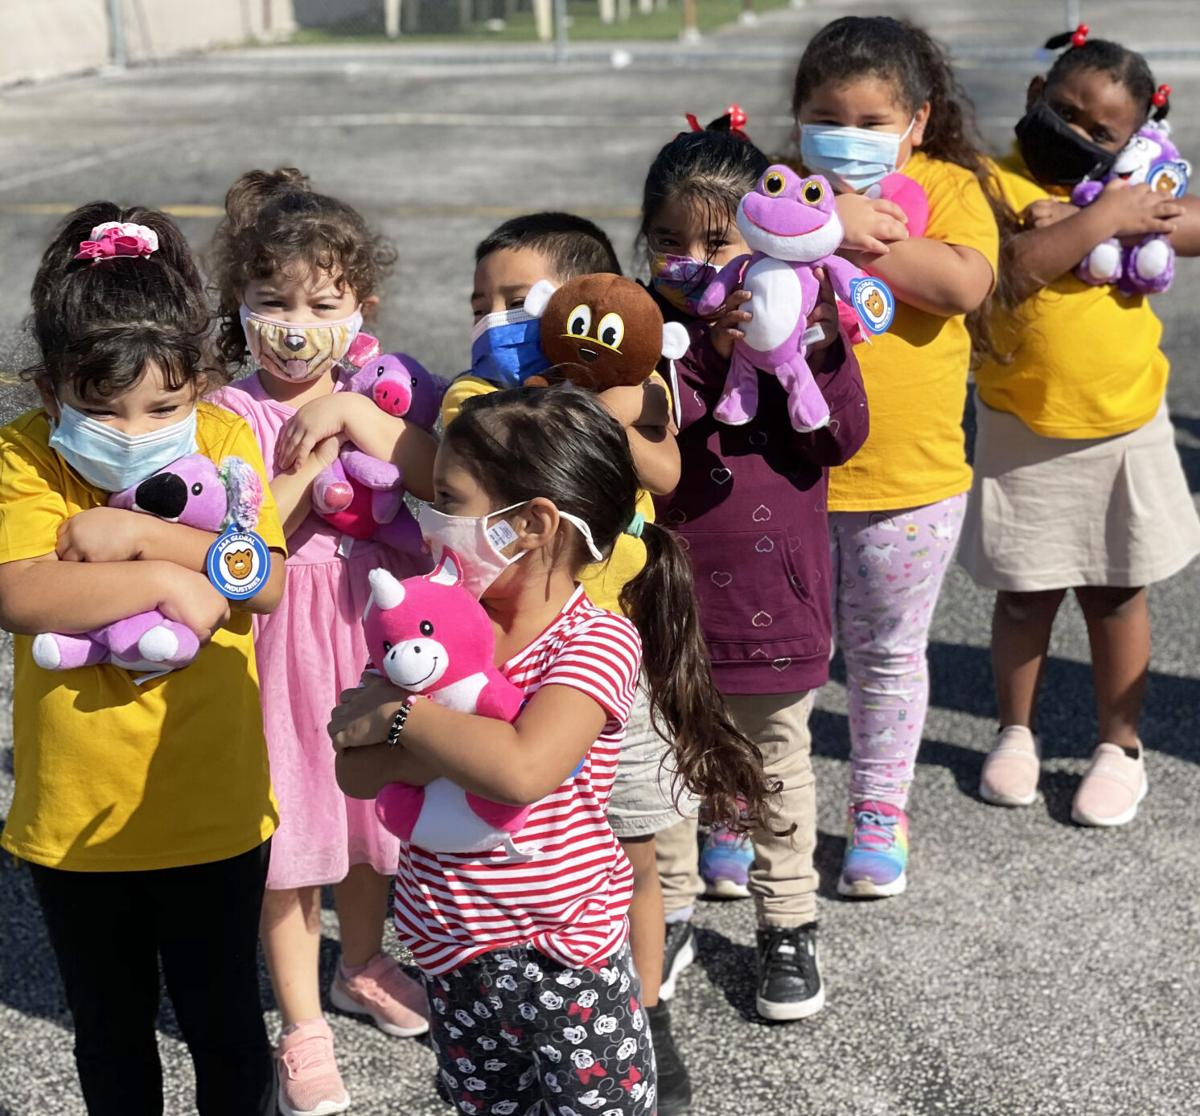 Kids at ARC Project #5 enjoy their Christmas gifts from the Kiwanis Club of Homestead-South Dade.  The club made several visits to daycare facilities throughout the area—despite the COVID-19 pandemic—as part of its nearly 20-year tradition.